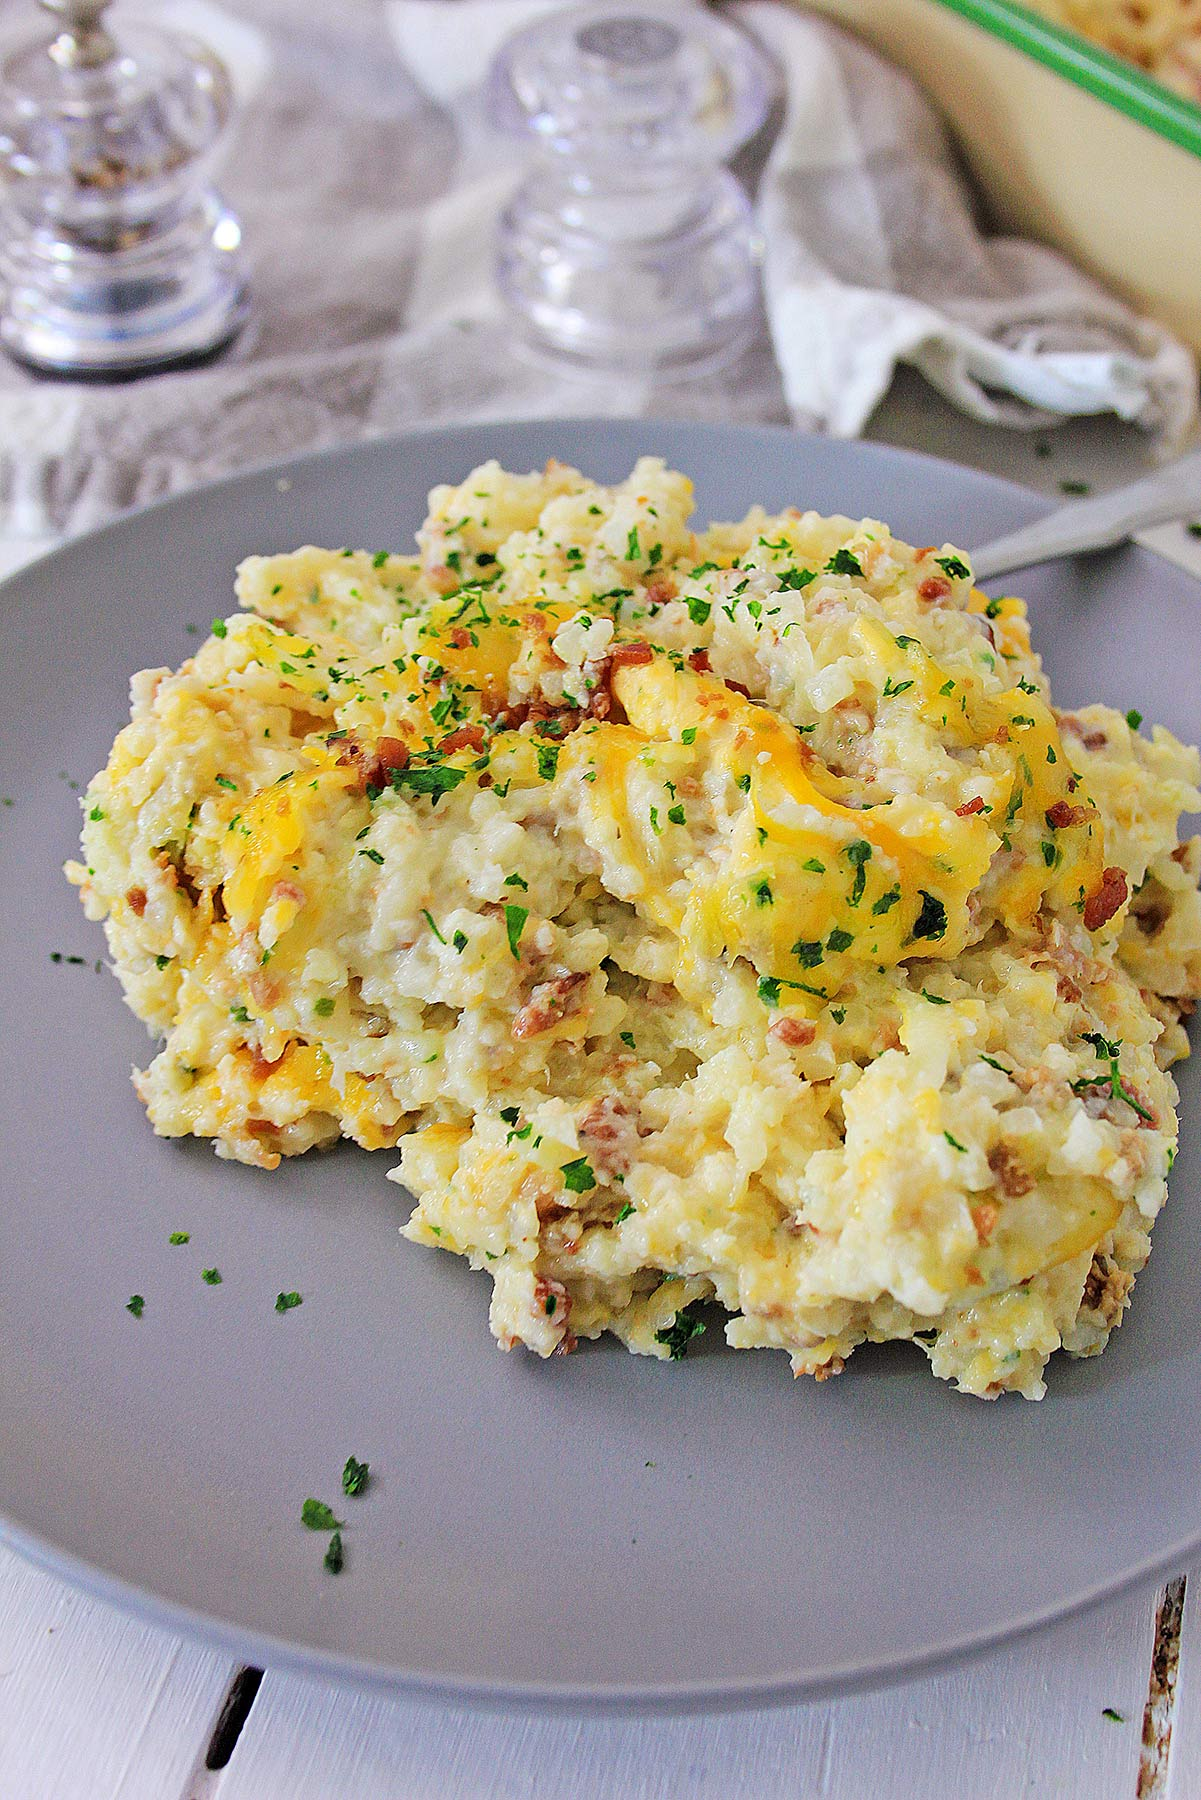 loaded cauliflower bake on a gray plate with salt shakers on the side and a green casserole in the background.